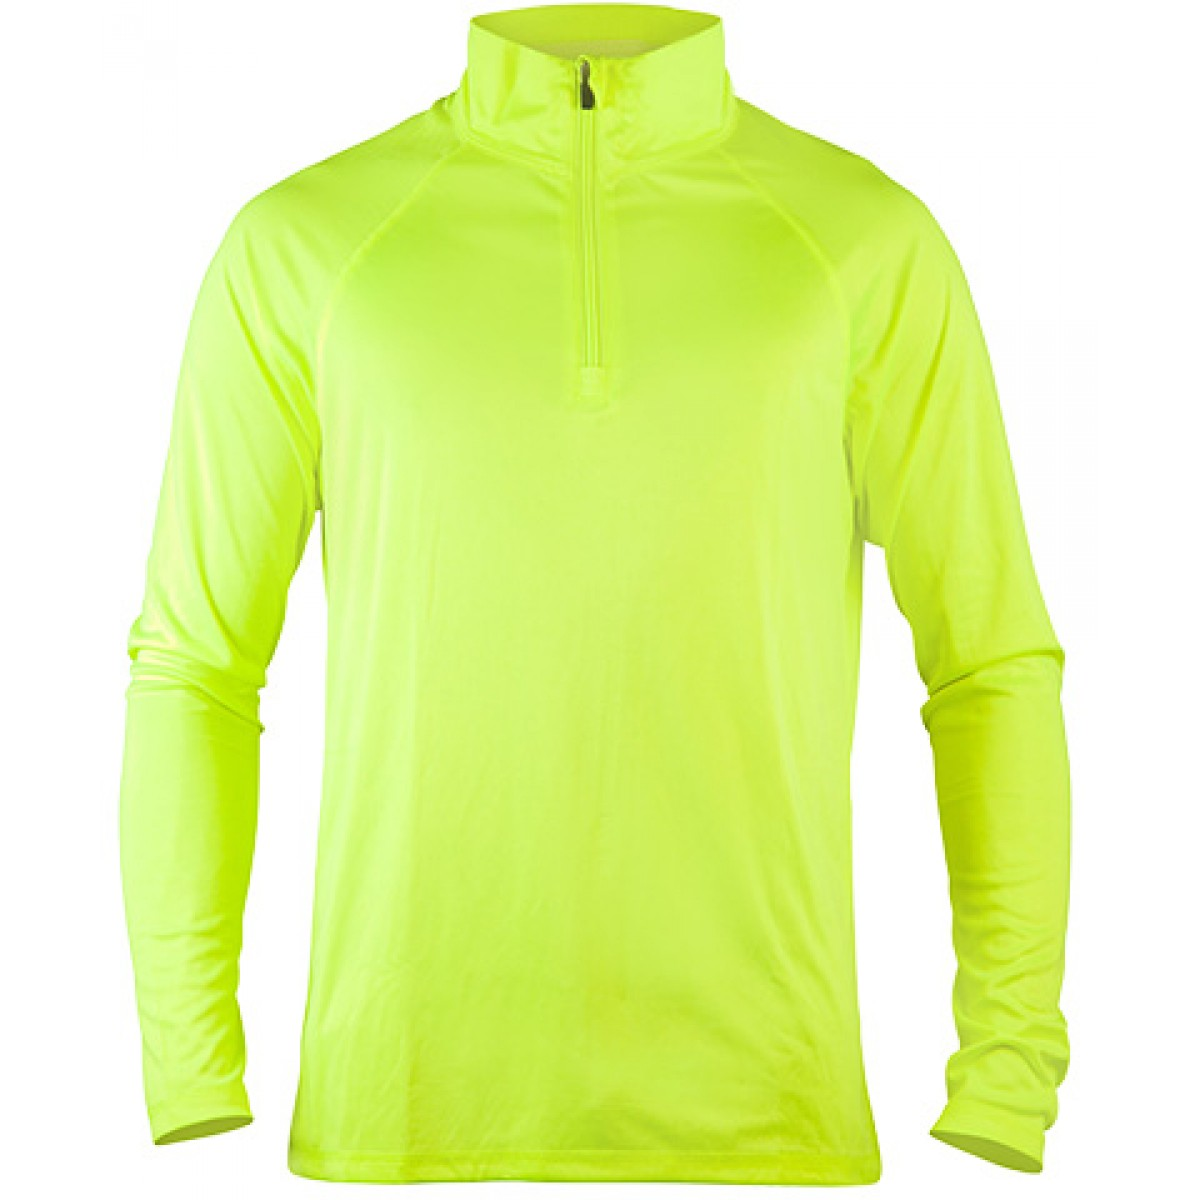 Men's Quarter-Zip Lightweight Pullover-Neon Green-YM